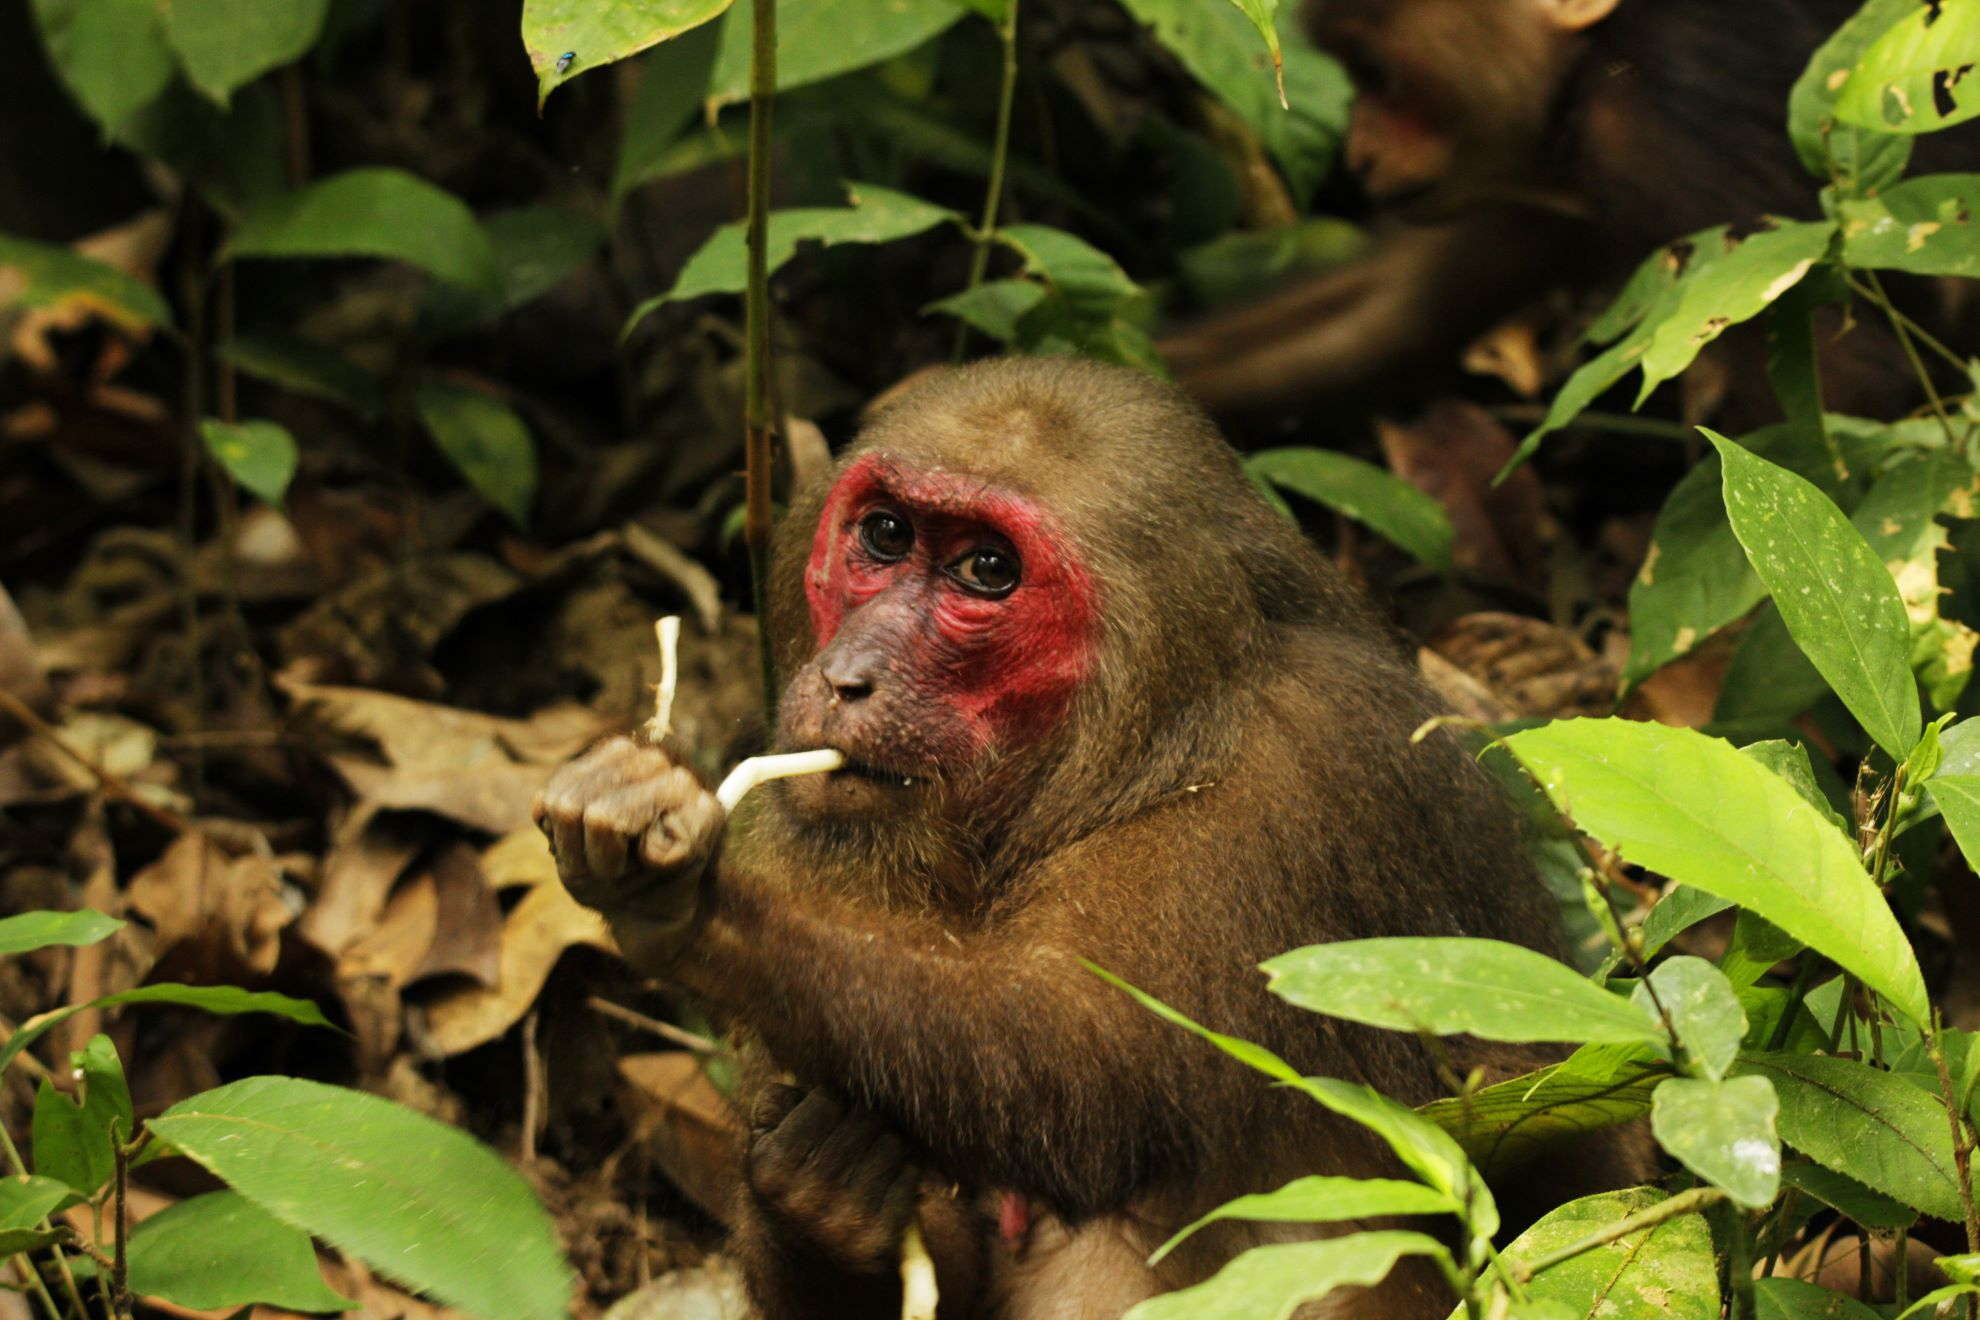 Stump-tailed macaques start foraging for food at the crack of dawn, and spend all day, traveling and eating. They are voracious omnivores — while they mostly eat fruits, they also feed on tubers, flowers, leaves, roots, crabs, bird eggs, frogs, and insects. Photo: Diganta Gogoi